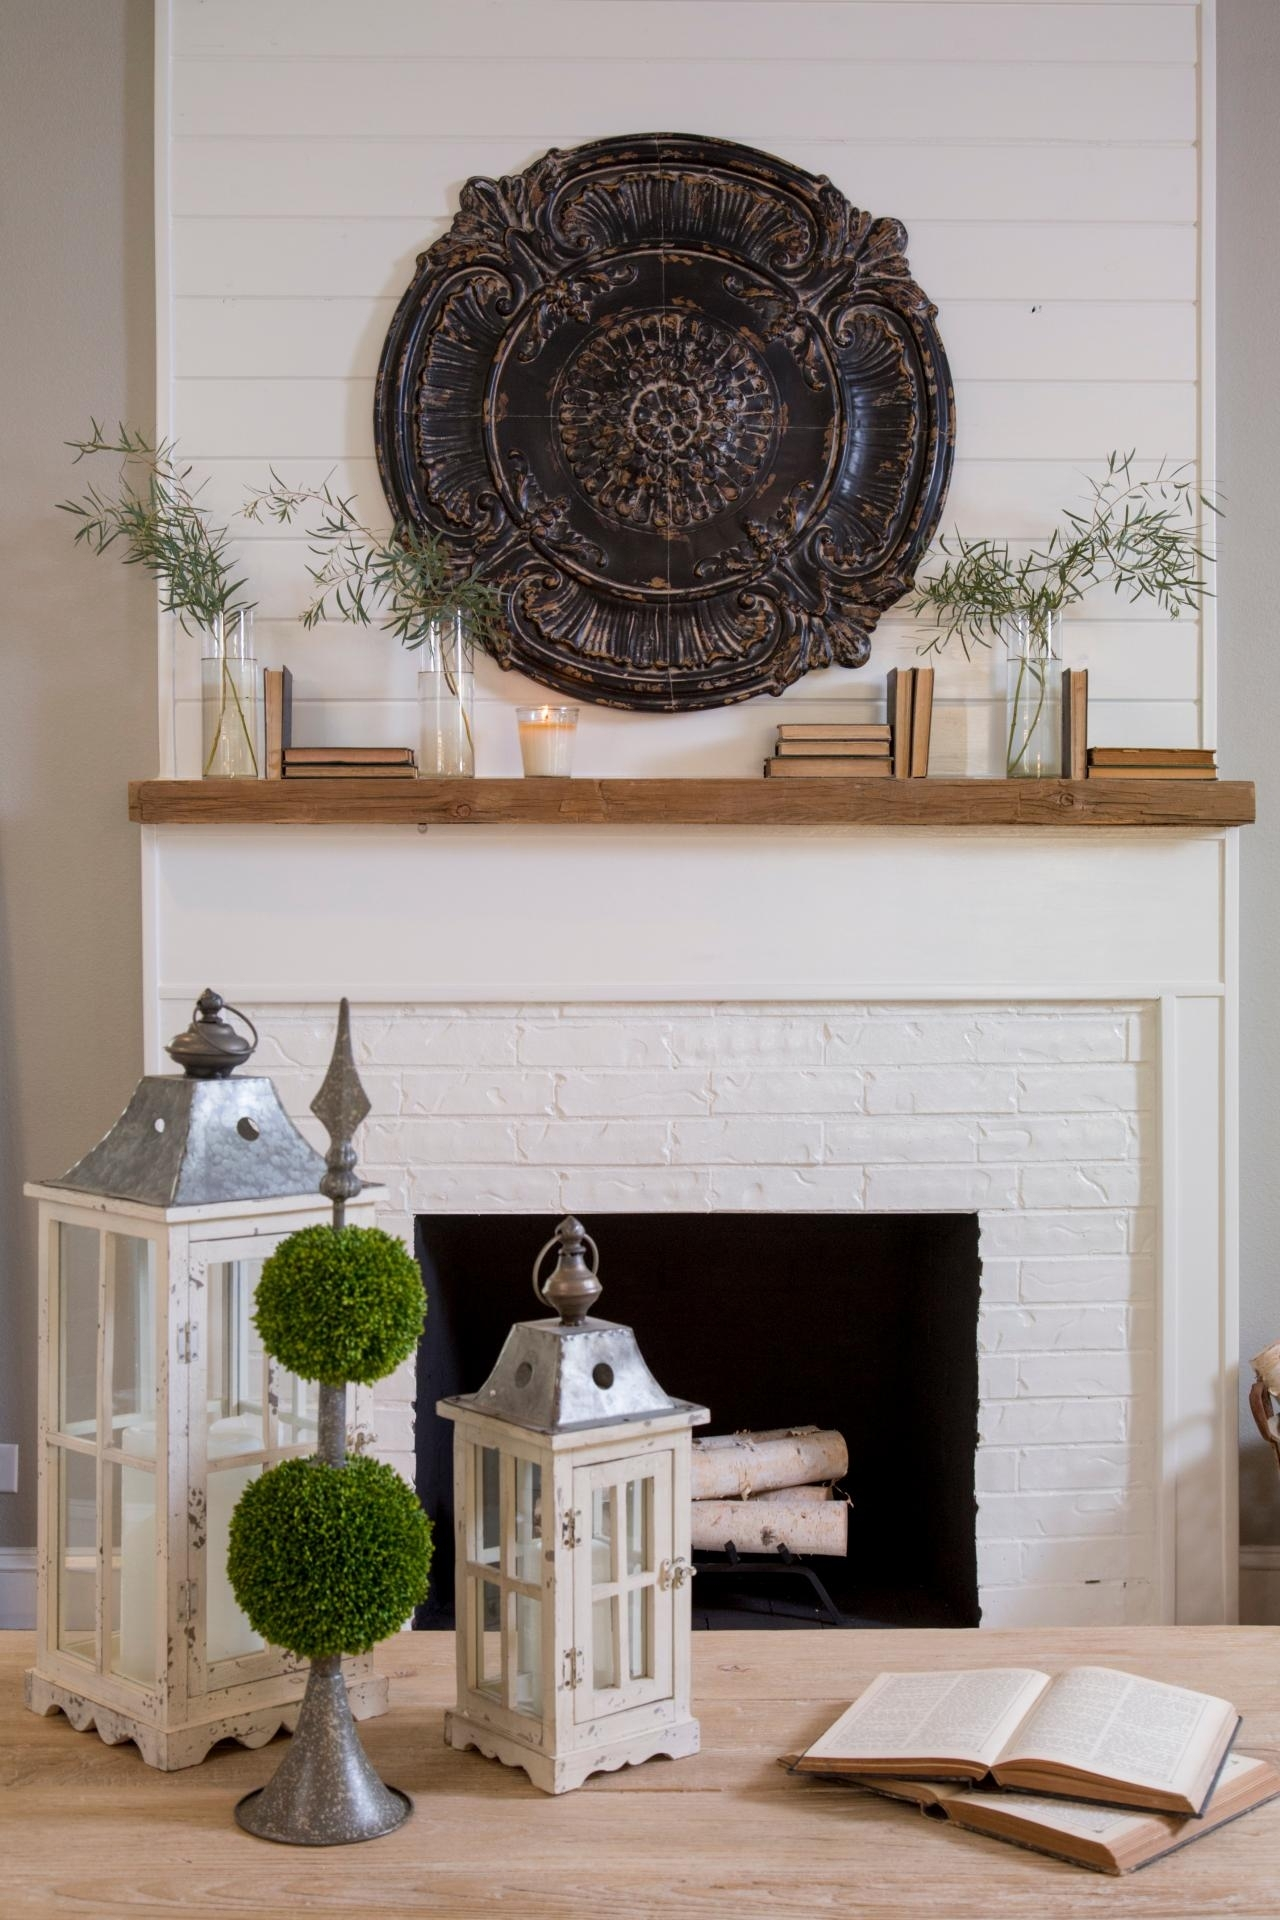 18 Genius Wall Decor Ideas | Hgtv's Decorating & Design Blog | Hgtv Within Most Popular Wall Accents Over Fireplace (View 4 of 15)